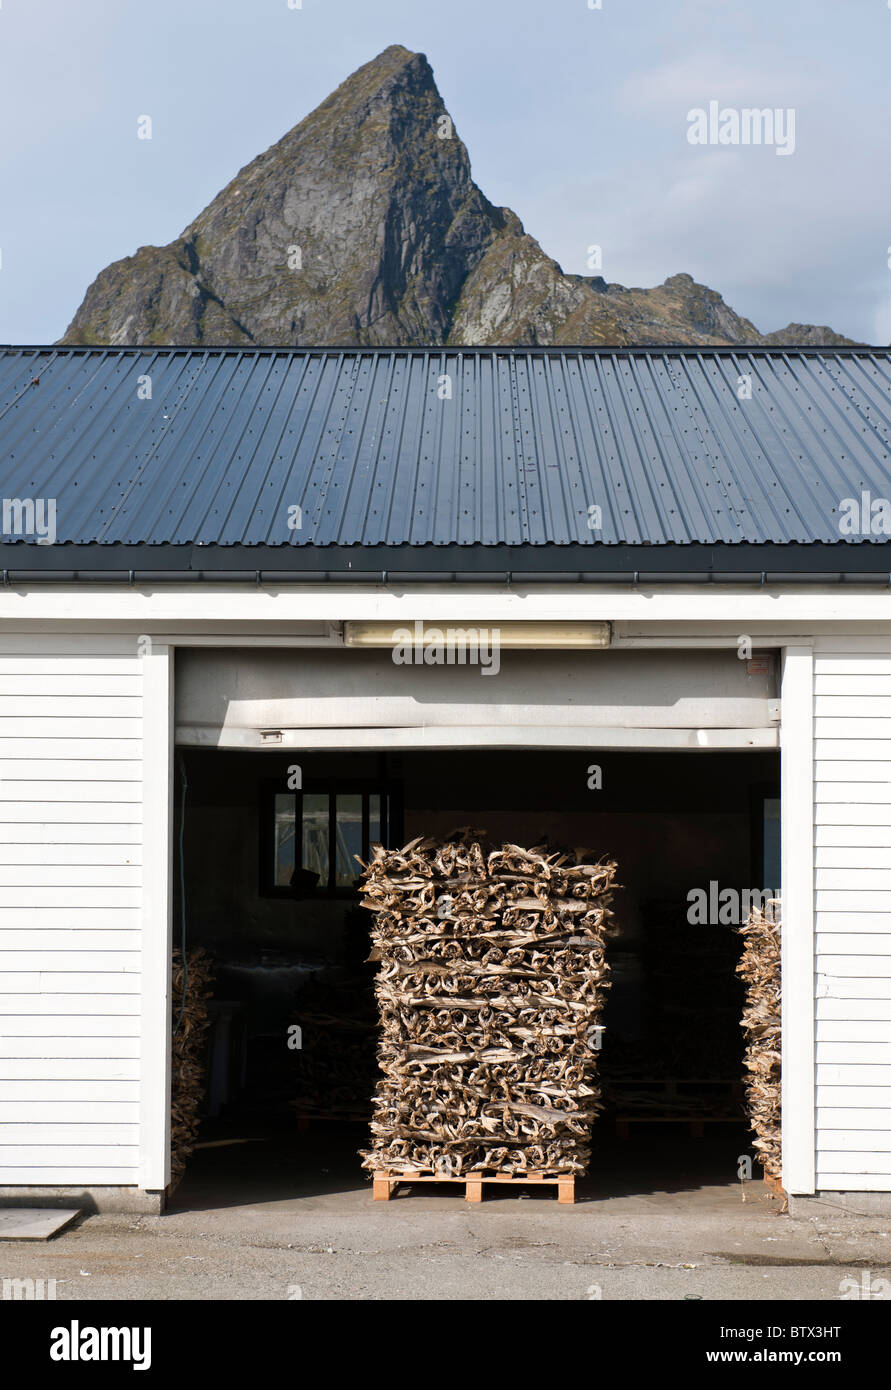 A pallet with stockfish (dried cod) in a door opening. Steep mountain in the background. From Lofoten islands, North - Stock Image